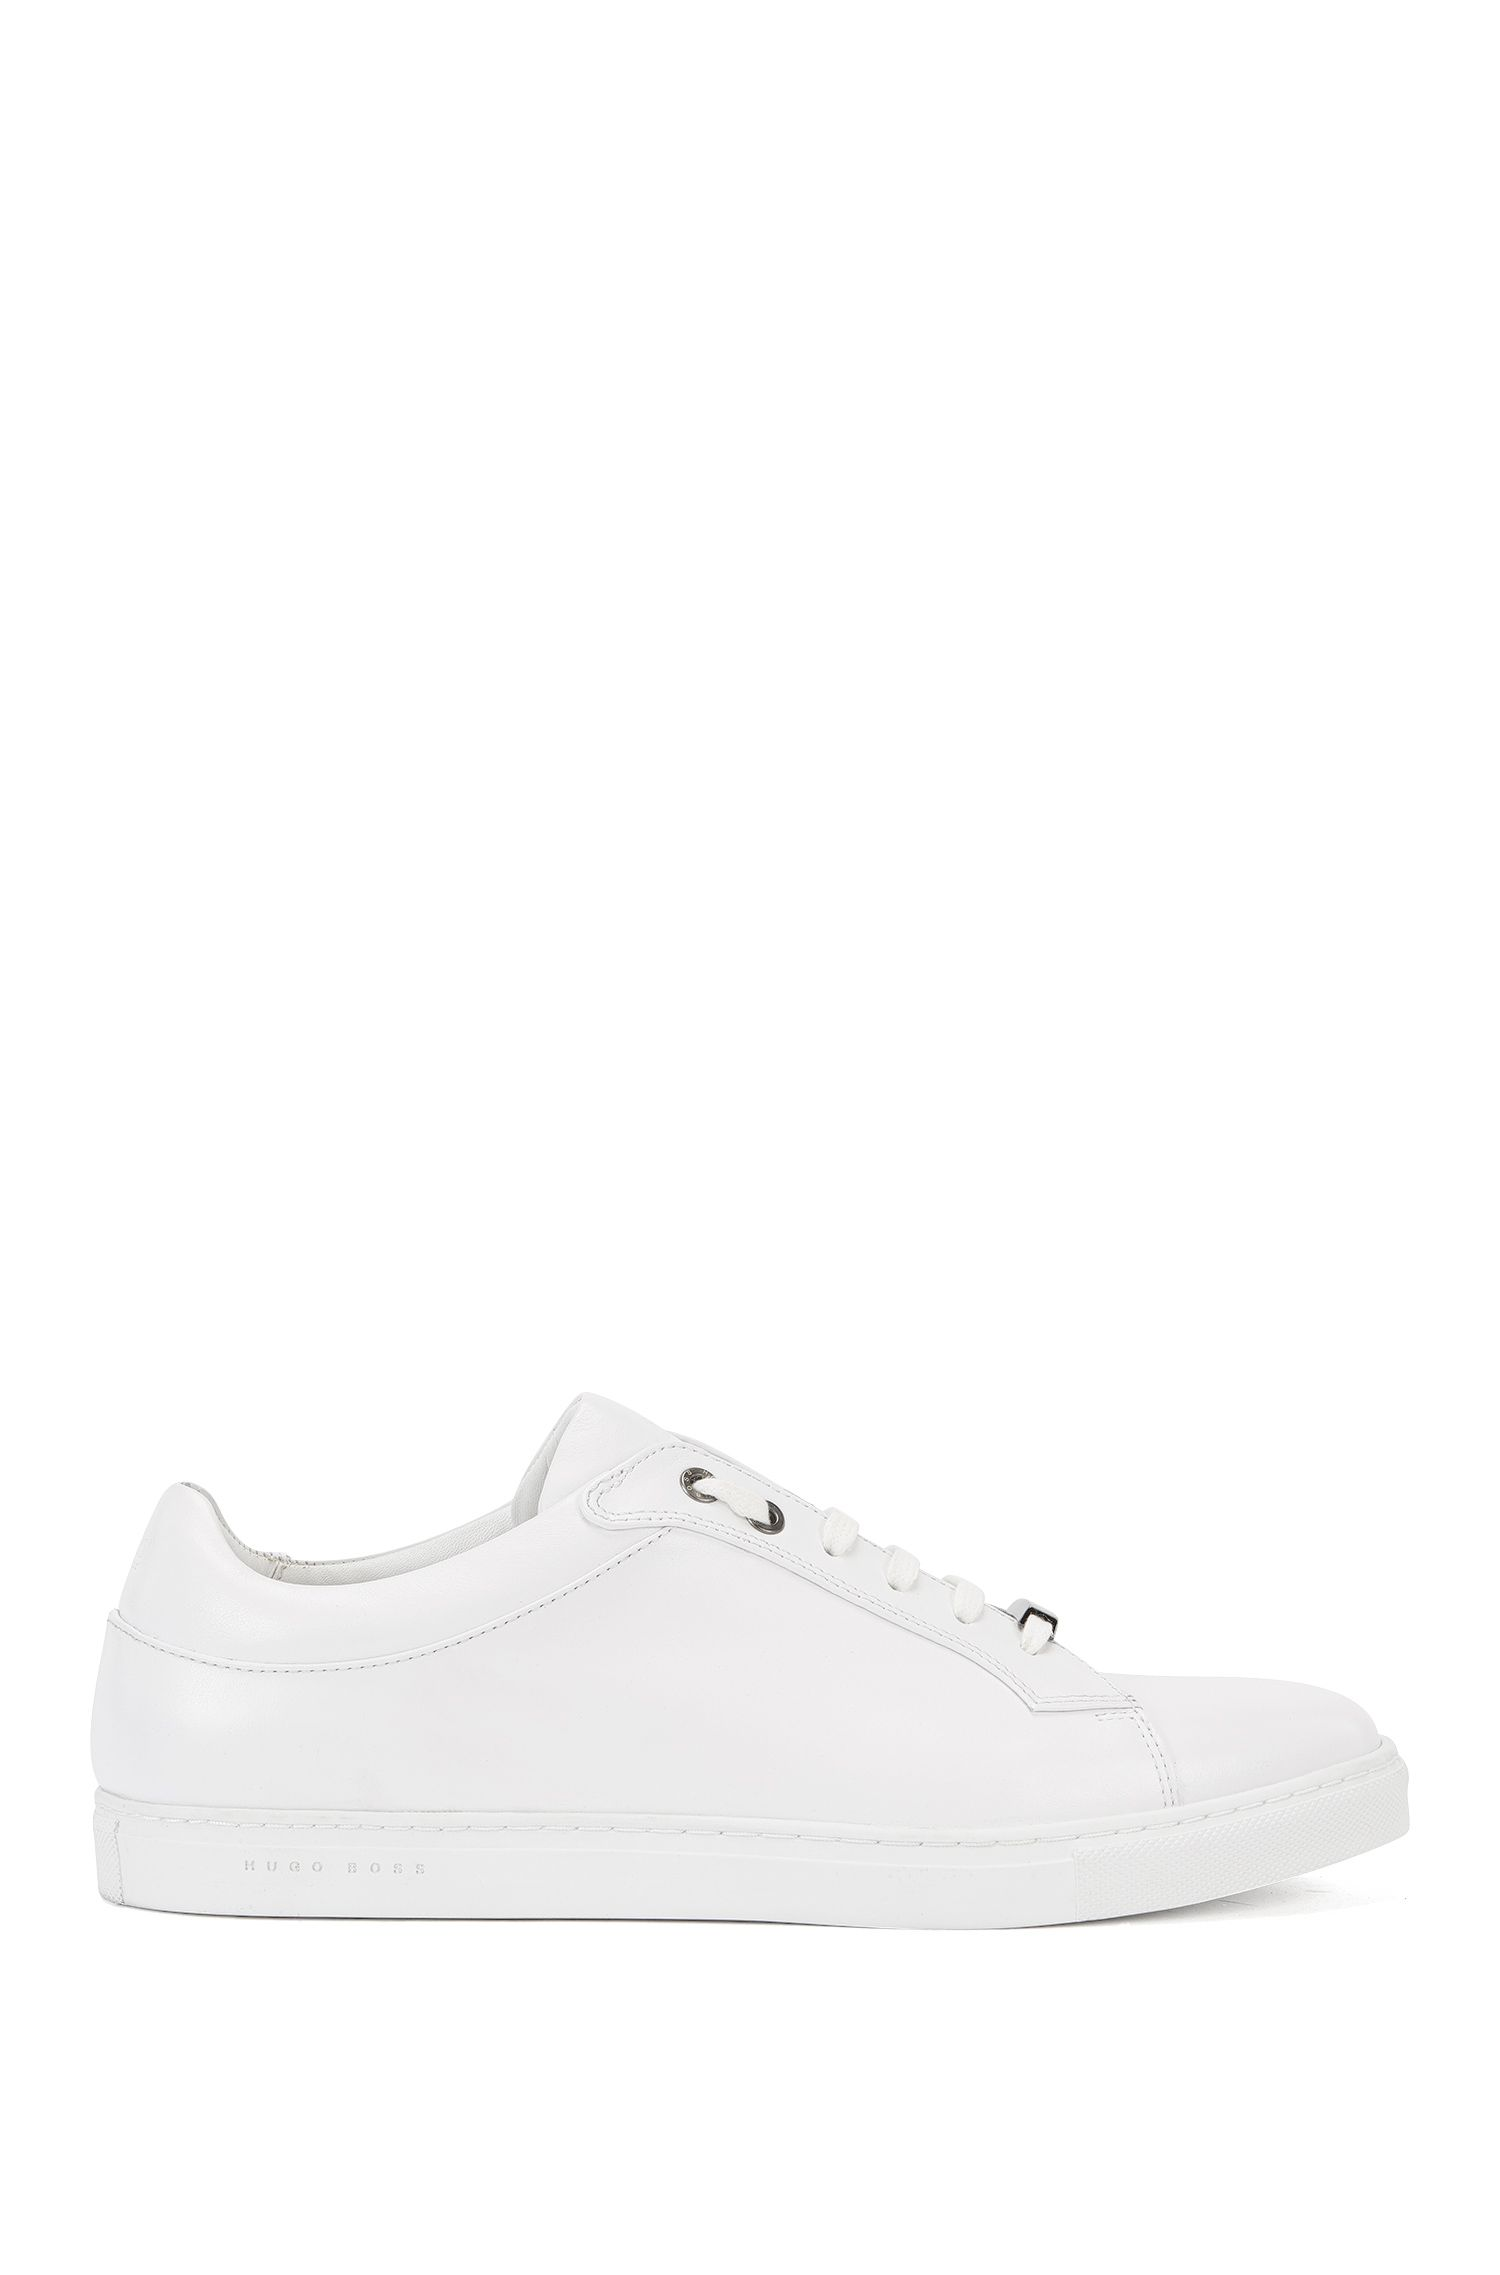 Leather lace-up trainers with branded sole